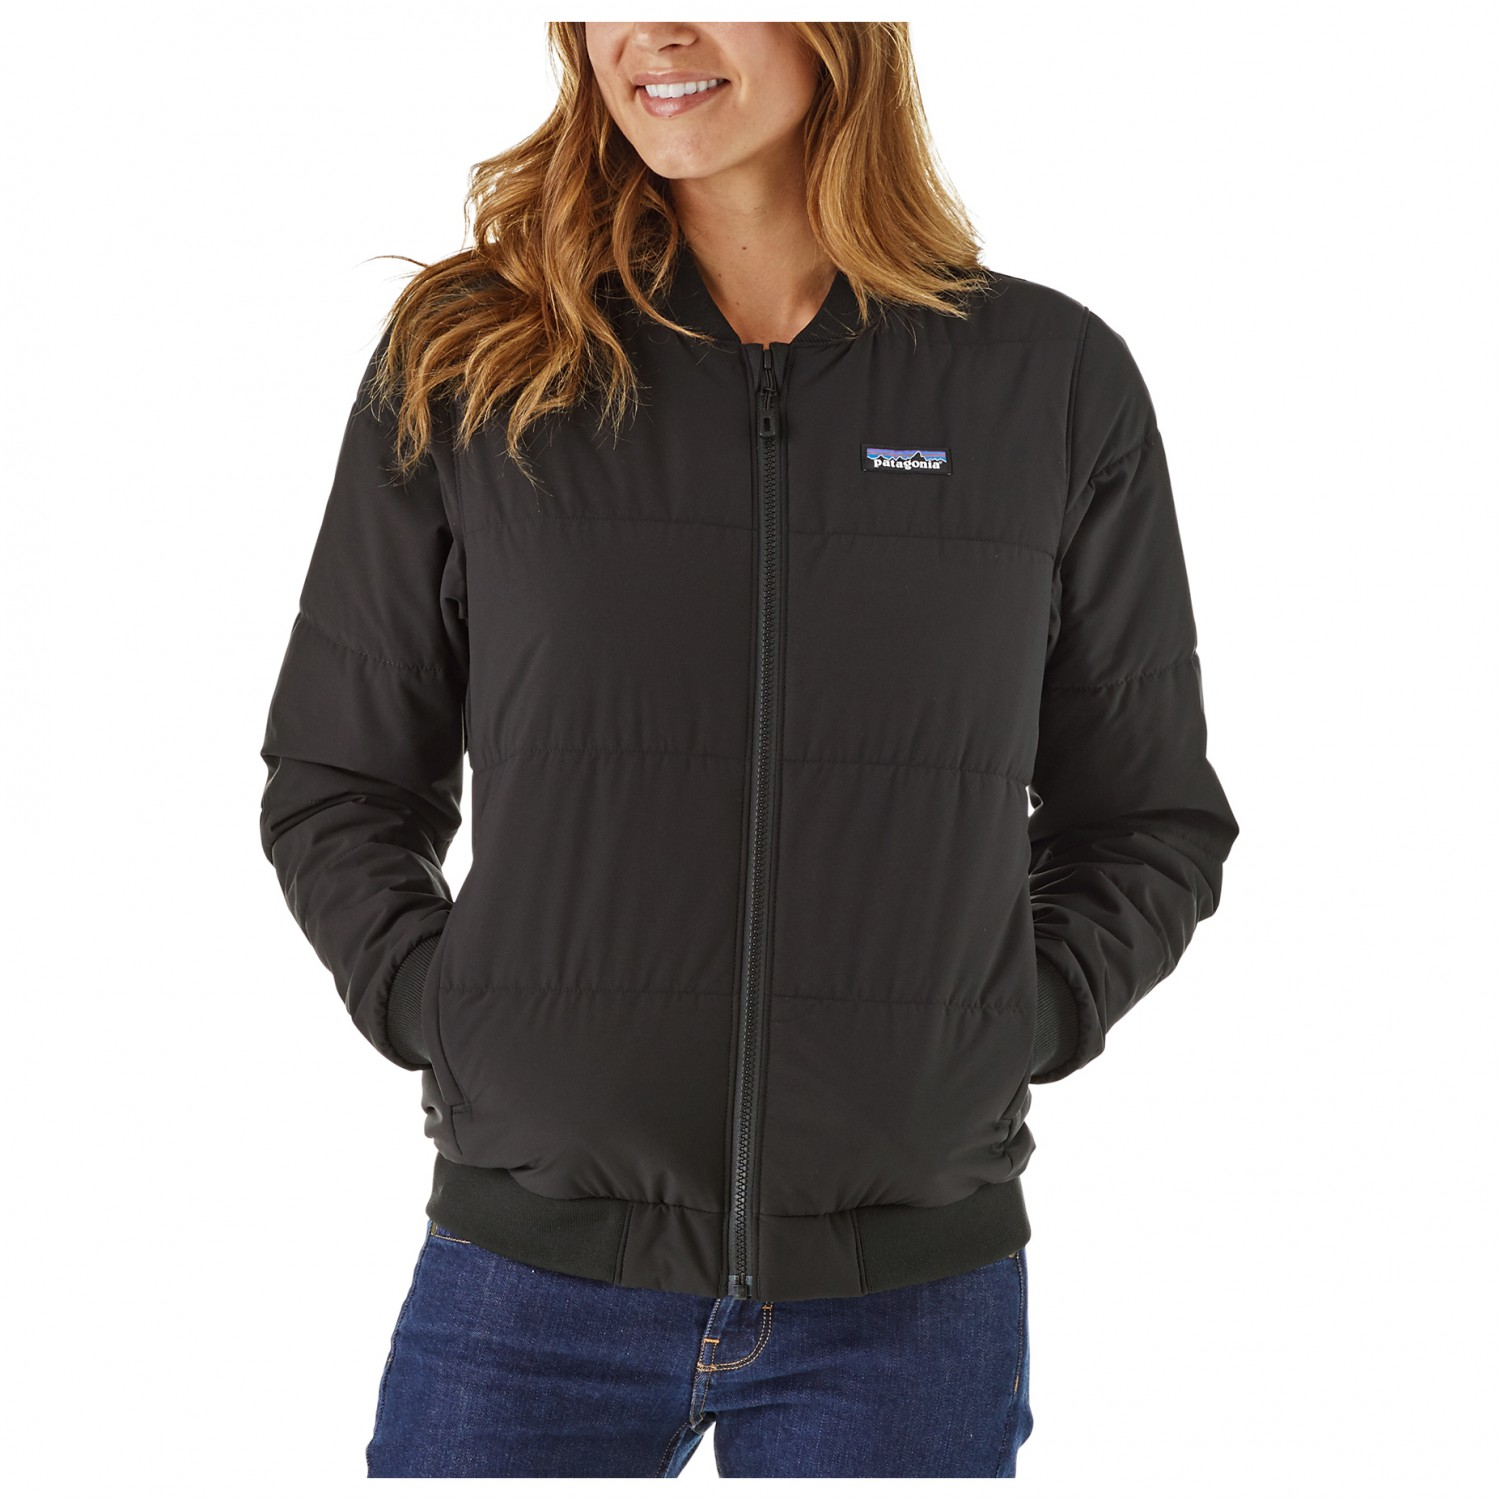 aa123447d69 ... Patagonia - Women s Zemer Bomber Jacket - Synthetic jacket ...